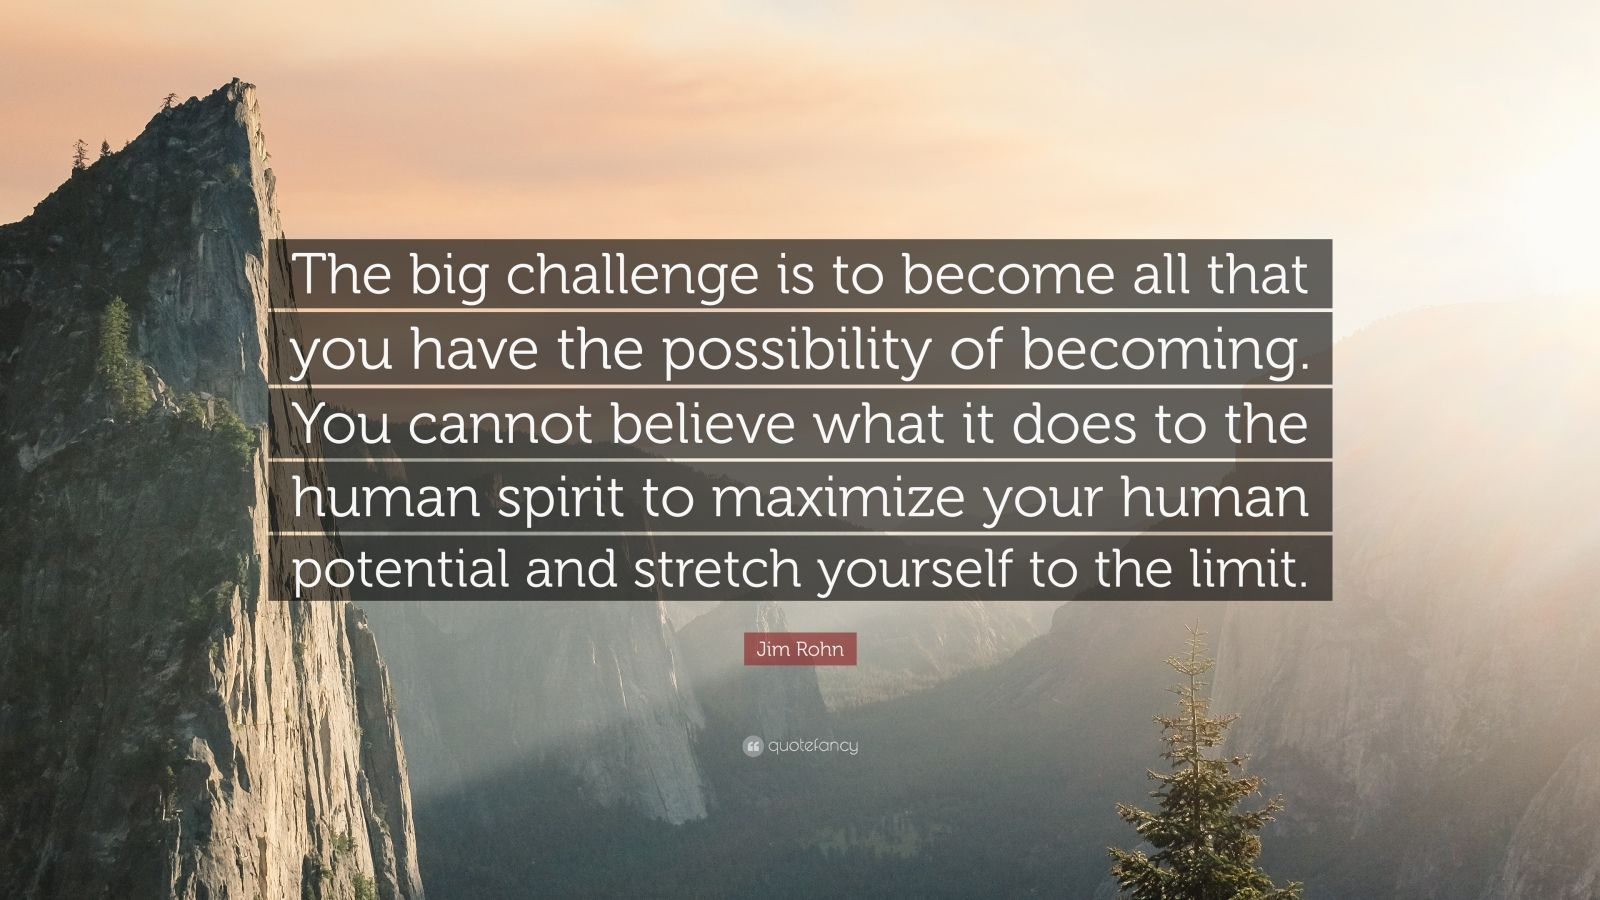 """Jim Rohn Quote: """"The big challenge is to become all that you have the possibility of becoming. You cannot believe what it does to the human spirit to maximize your human potential and stretch yourself to the limit."""""""